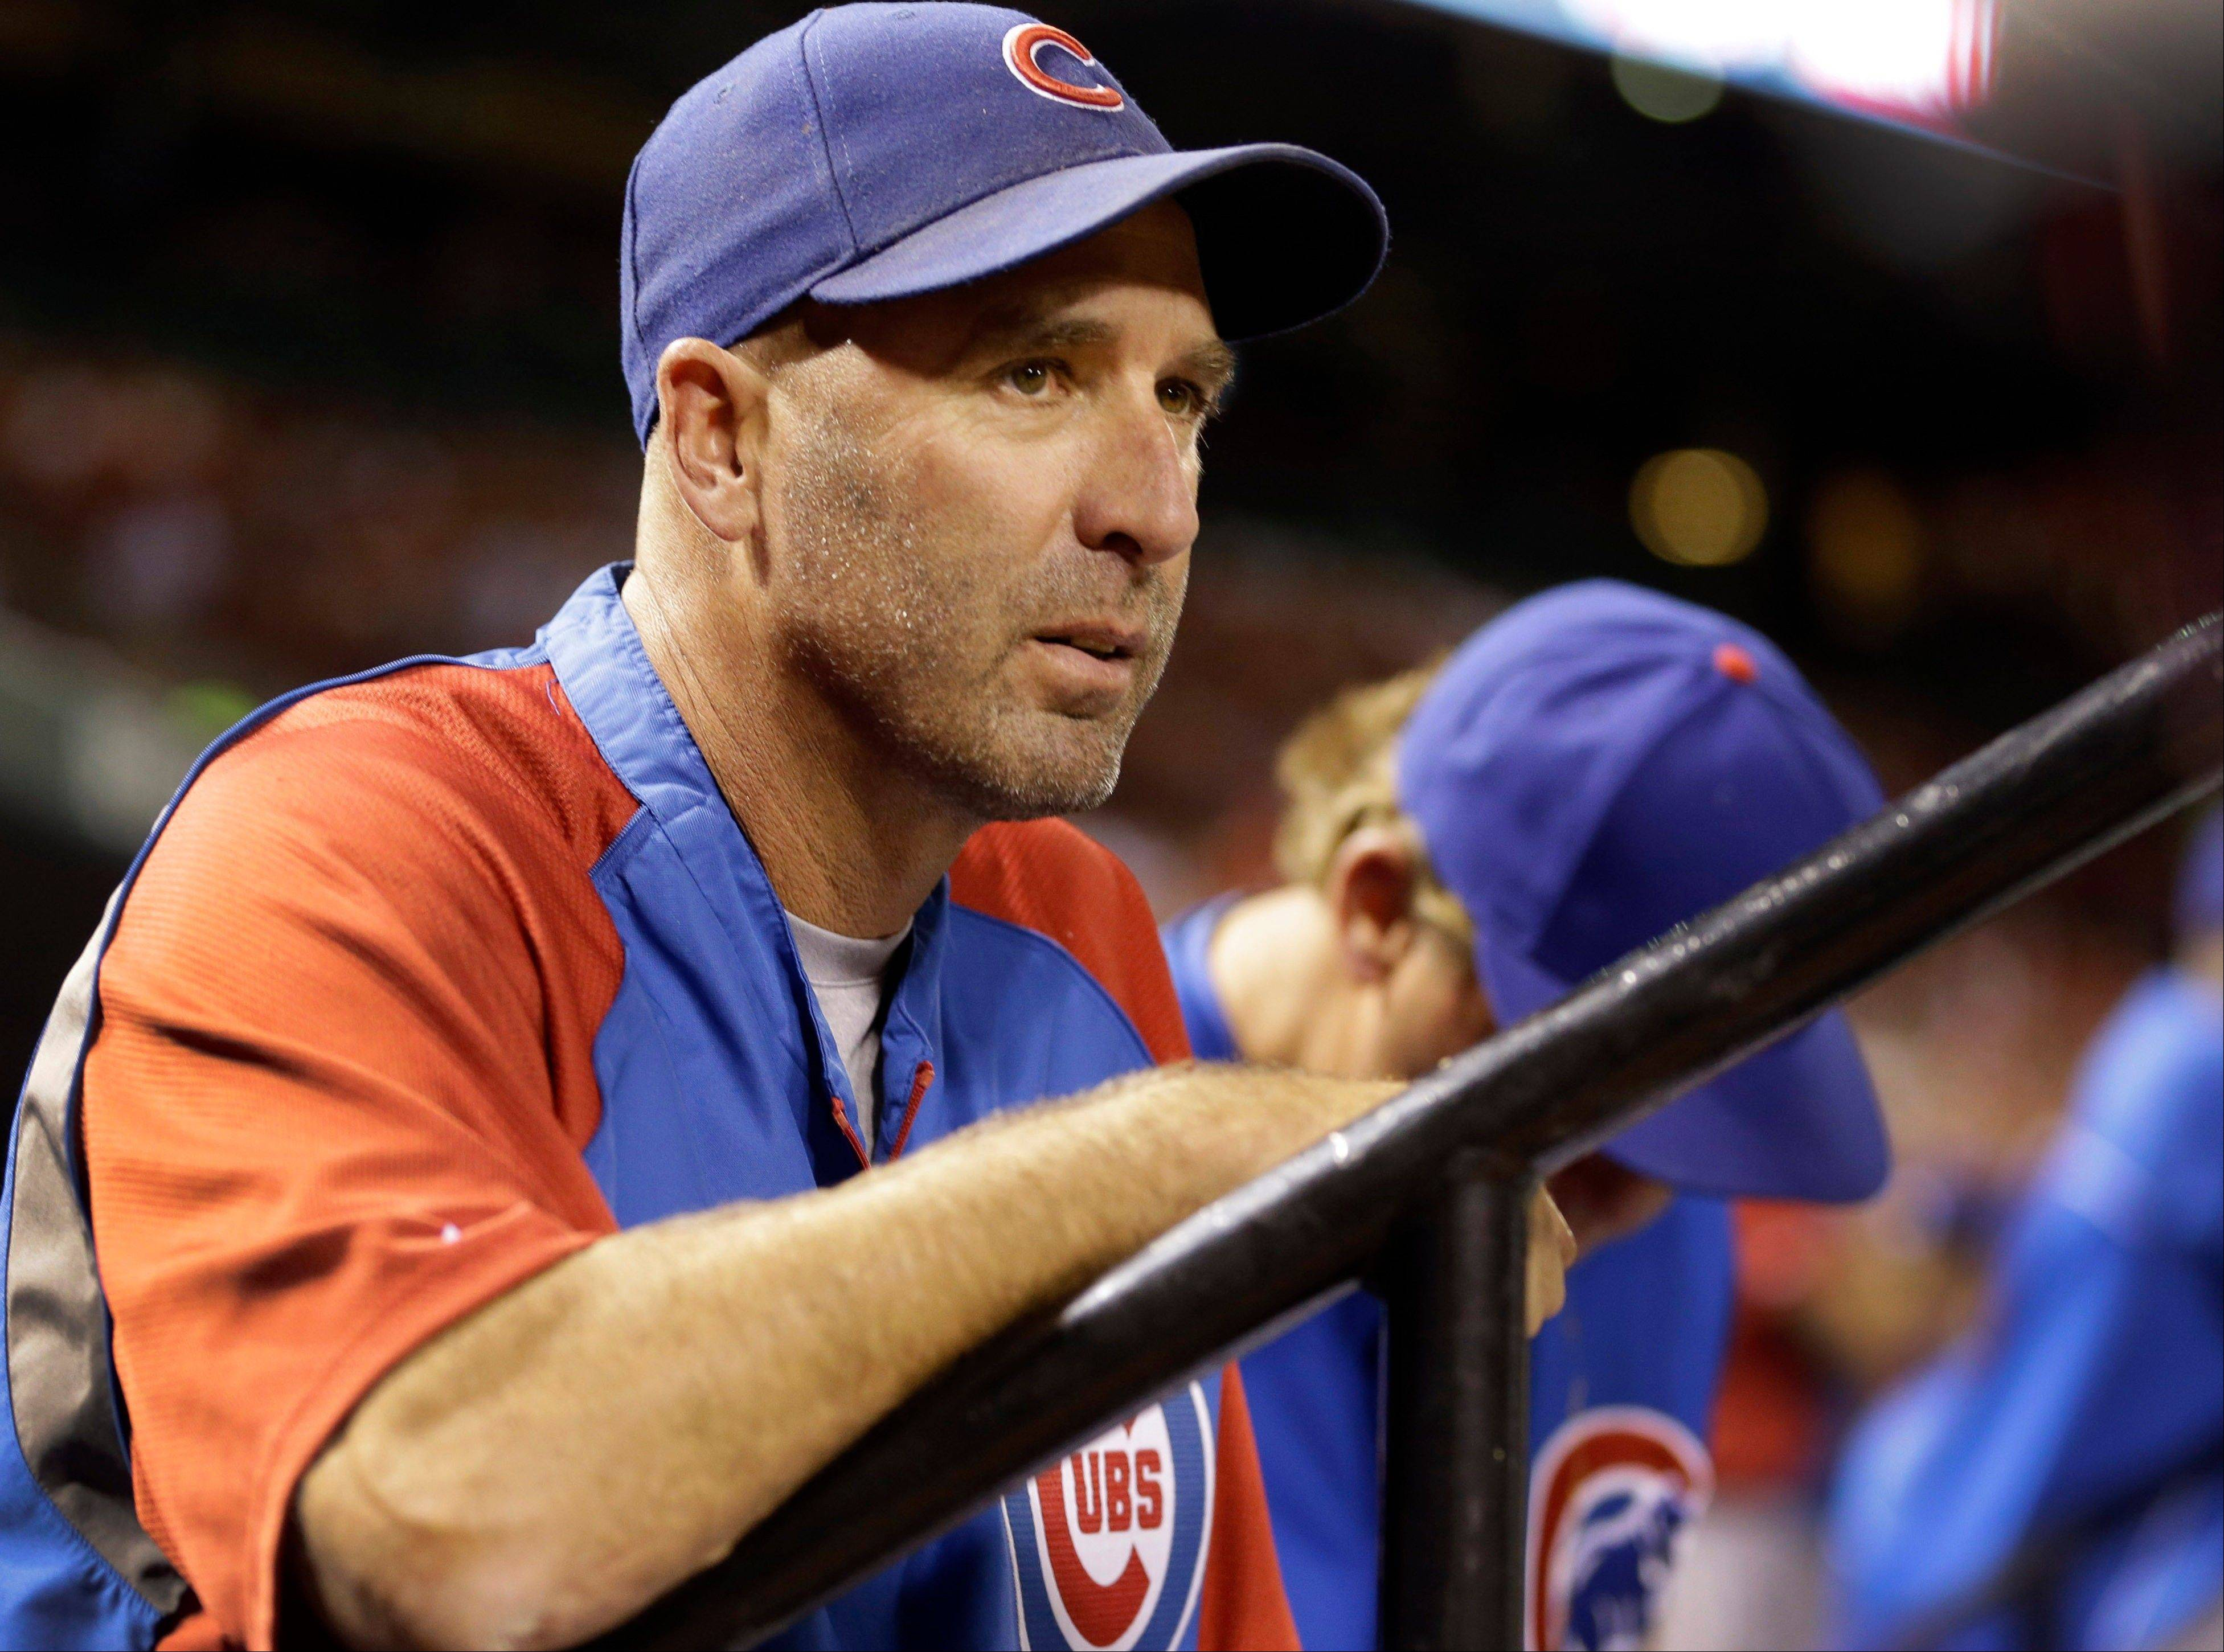 In this Sept. 27, 2013 file photo, Chicago Cubs manager Dale Sveum watches from the dugout during a baseball game against the St. Louis Cardinals in St. Louis. The Cubs fired Sveum on Monday, Sept. 30, 2013, after finishing last in the NL Central for the first time in seven years, ending a two-year run that produced more losses than any other in the team's cursed history.